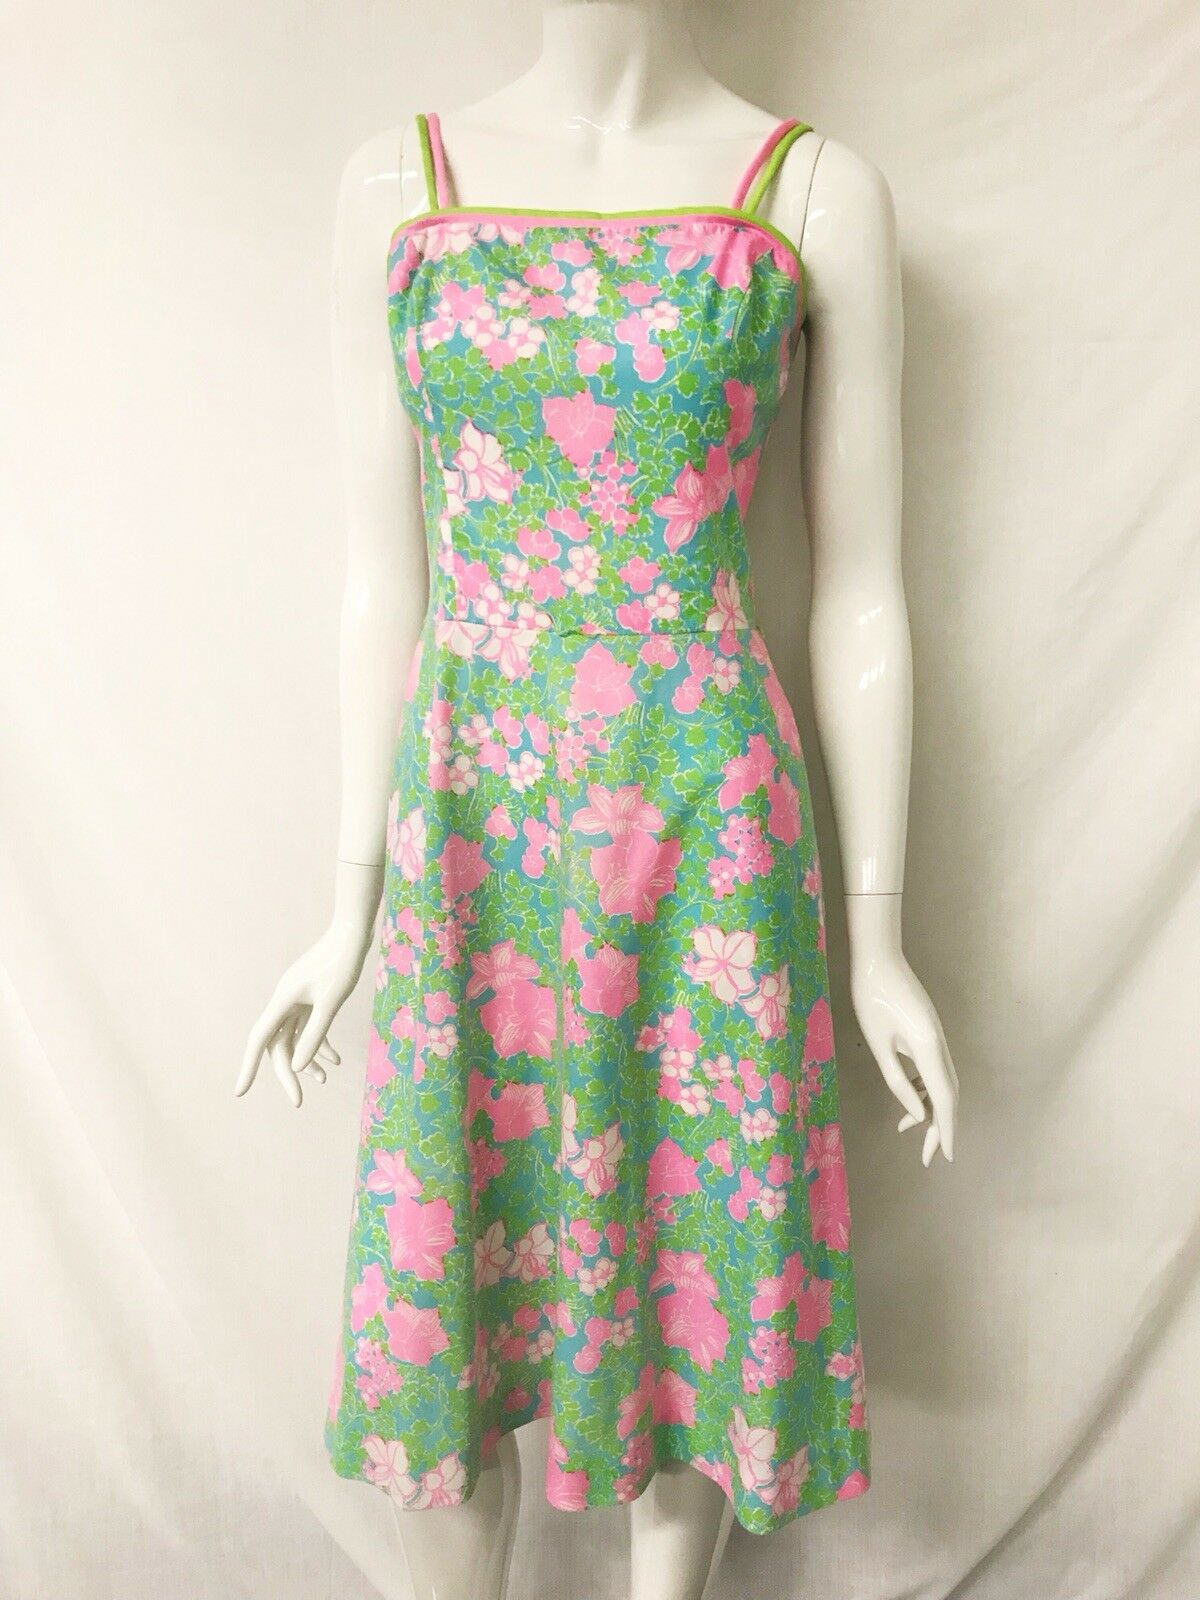 The LILLY PULITZER 60s 70s Pink Green Floral Double Strap Midi Dress Size M